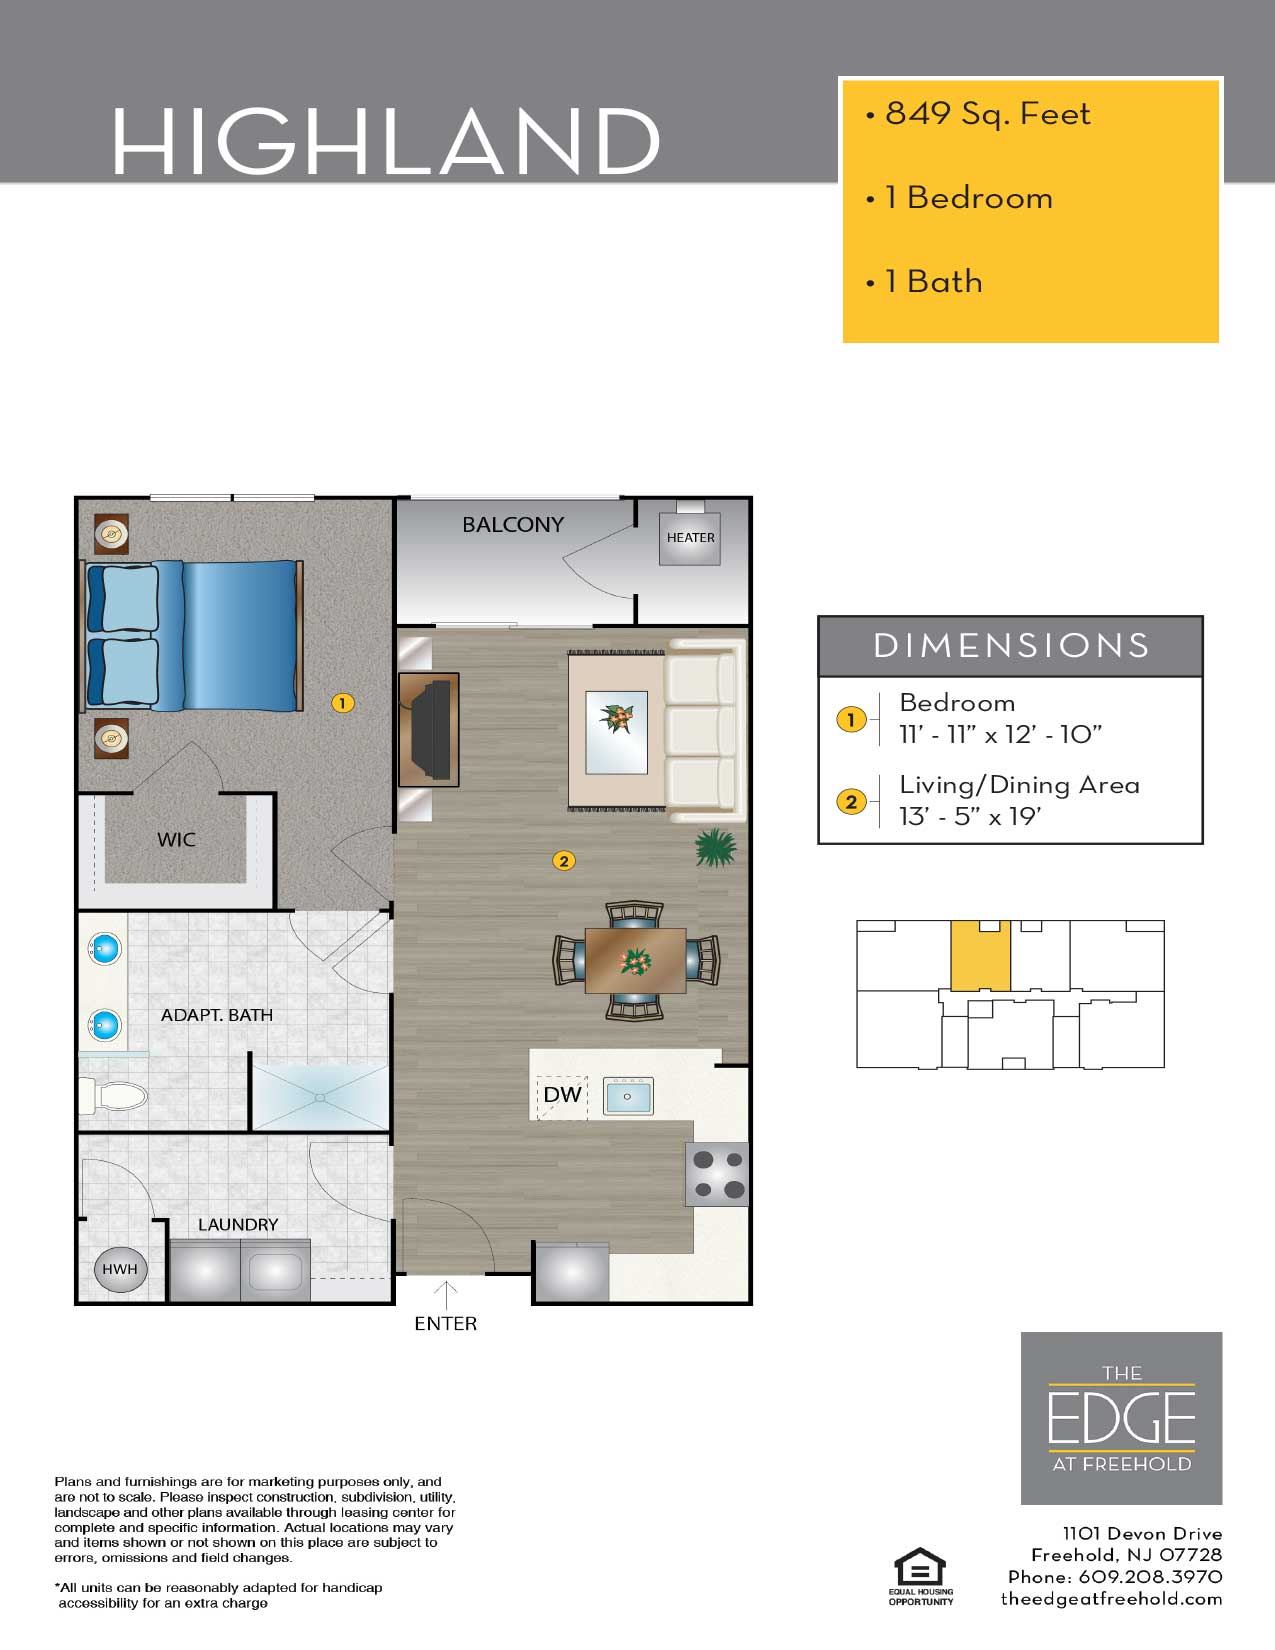 The Edge At Freehold Floor Plan Highland